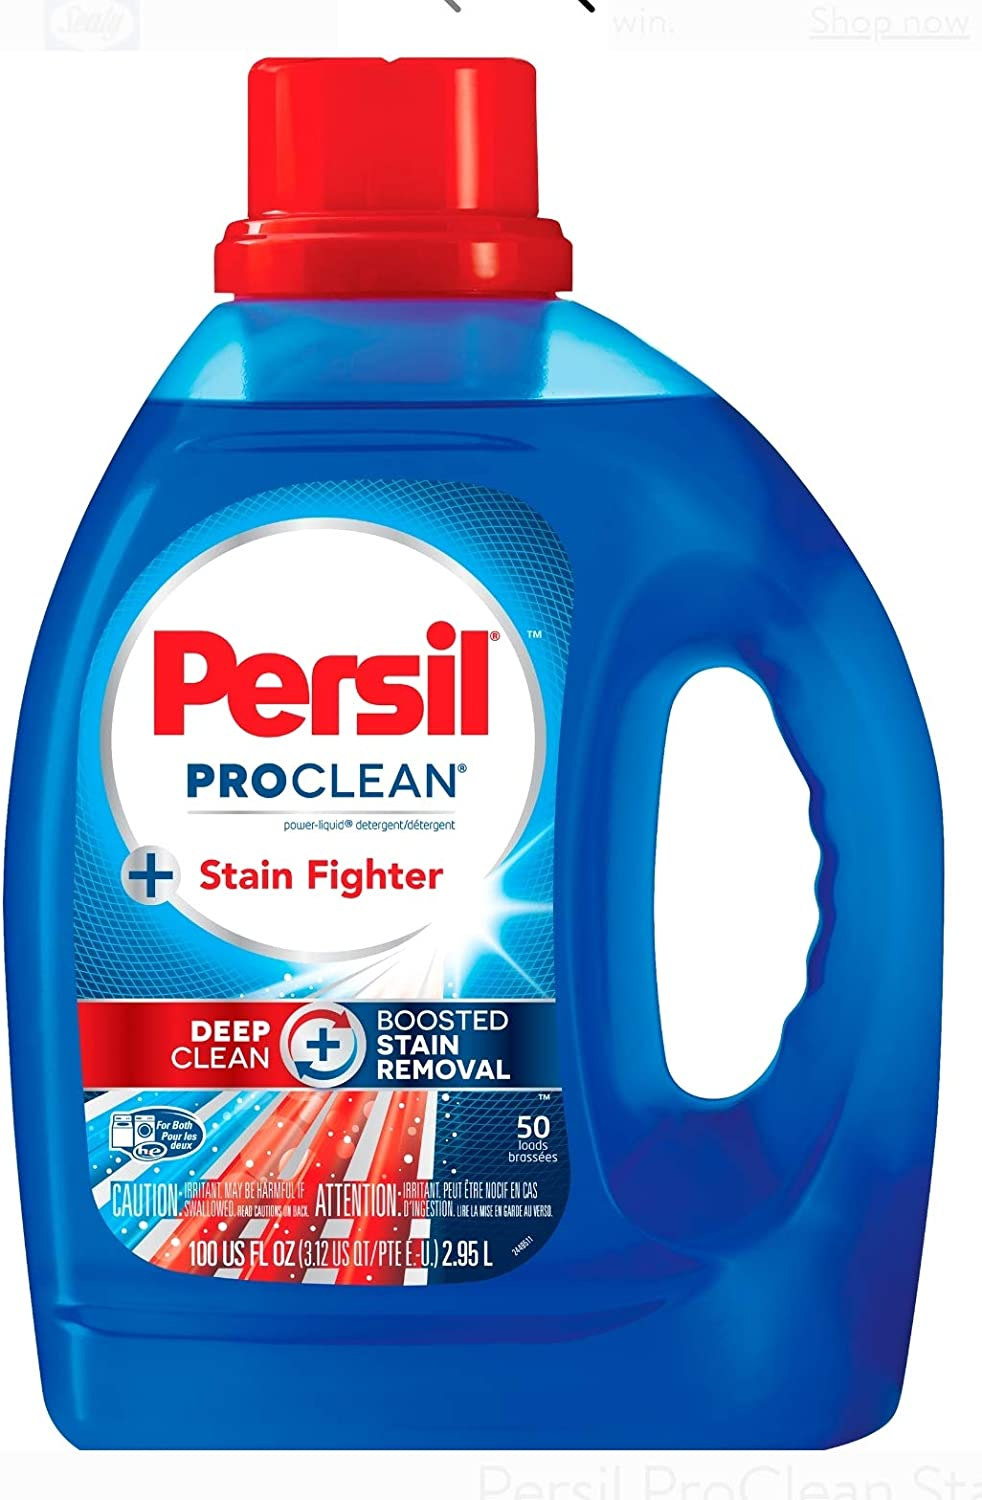 Persil ProClean 2-in-1 Liquid Laundry Detergent, 100 Fluid Ounces, 50 Loads (Packaging May Vary)